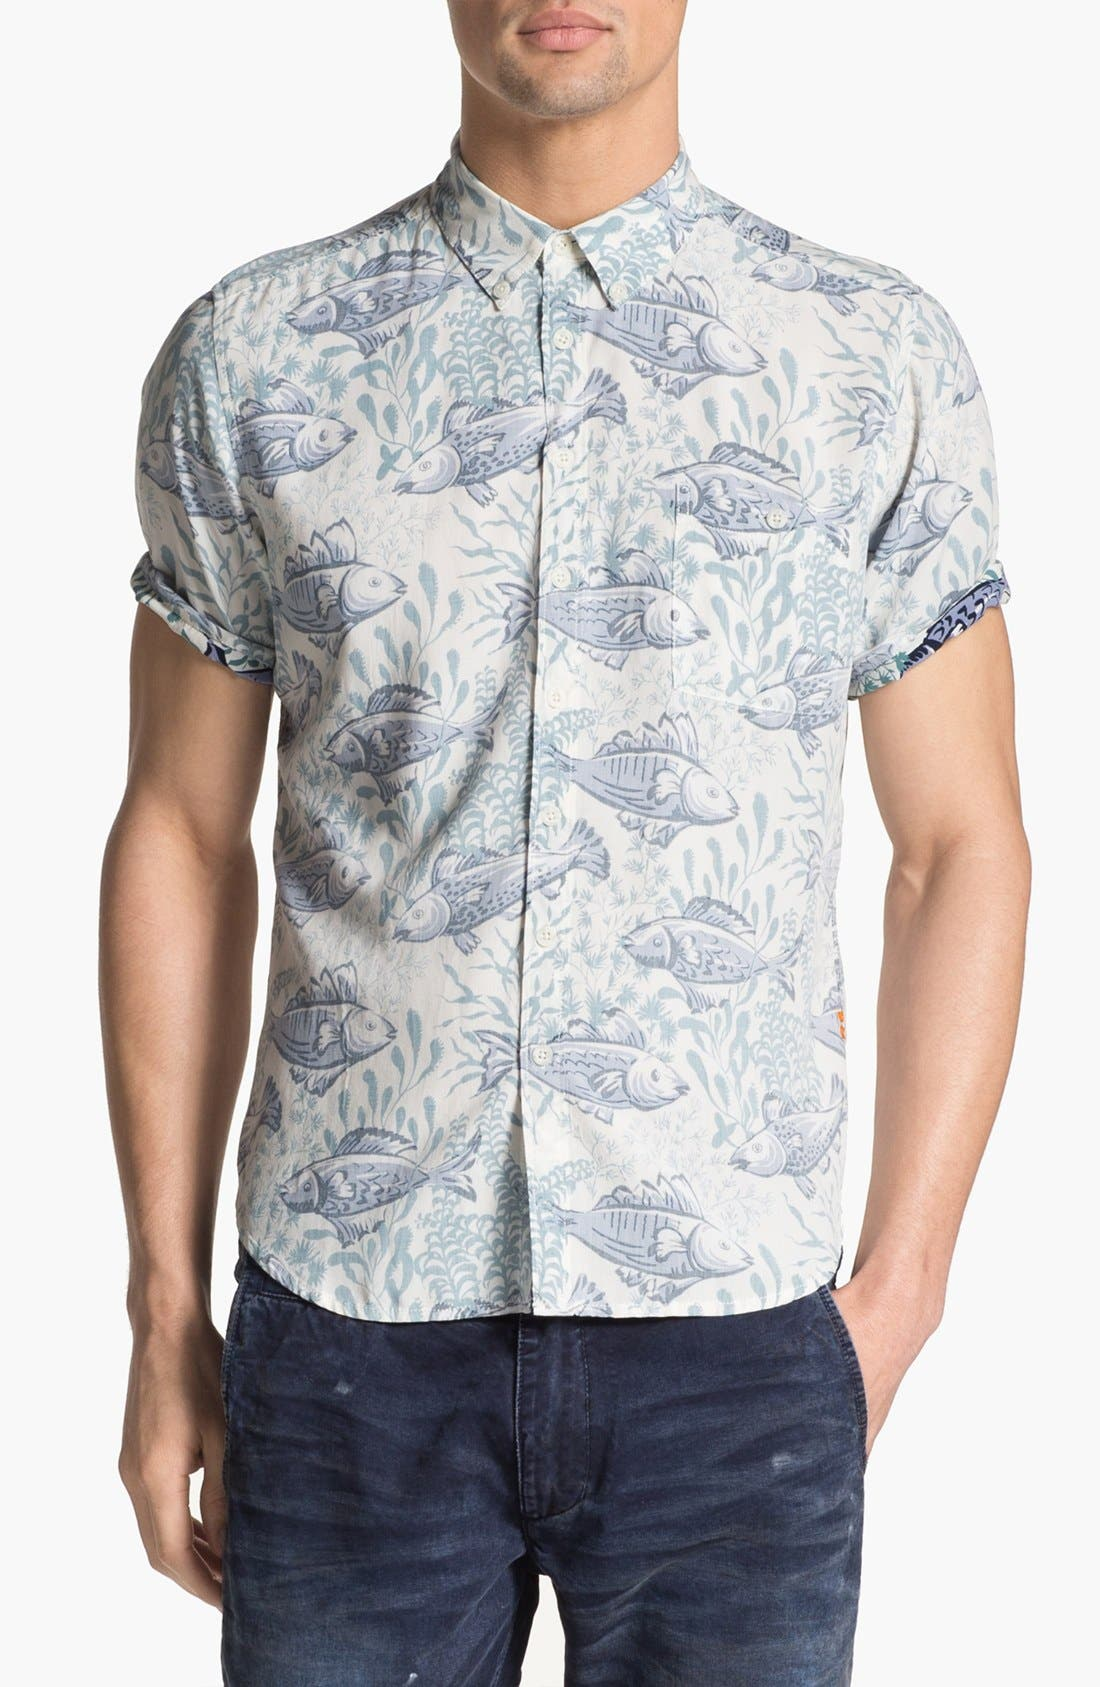 Alternate Image 1 Selected - Reyn Spooner 'Limu Forest' Print Rayon Shirt